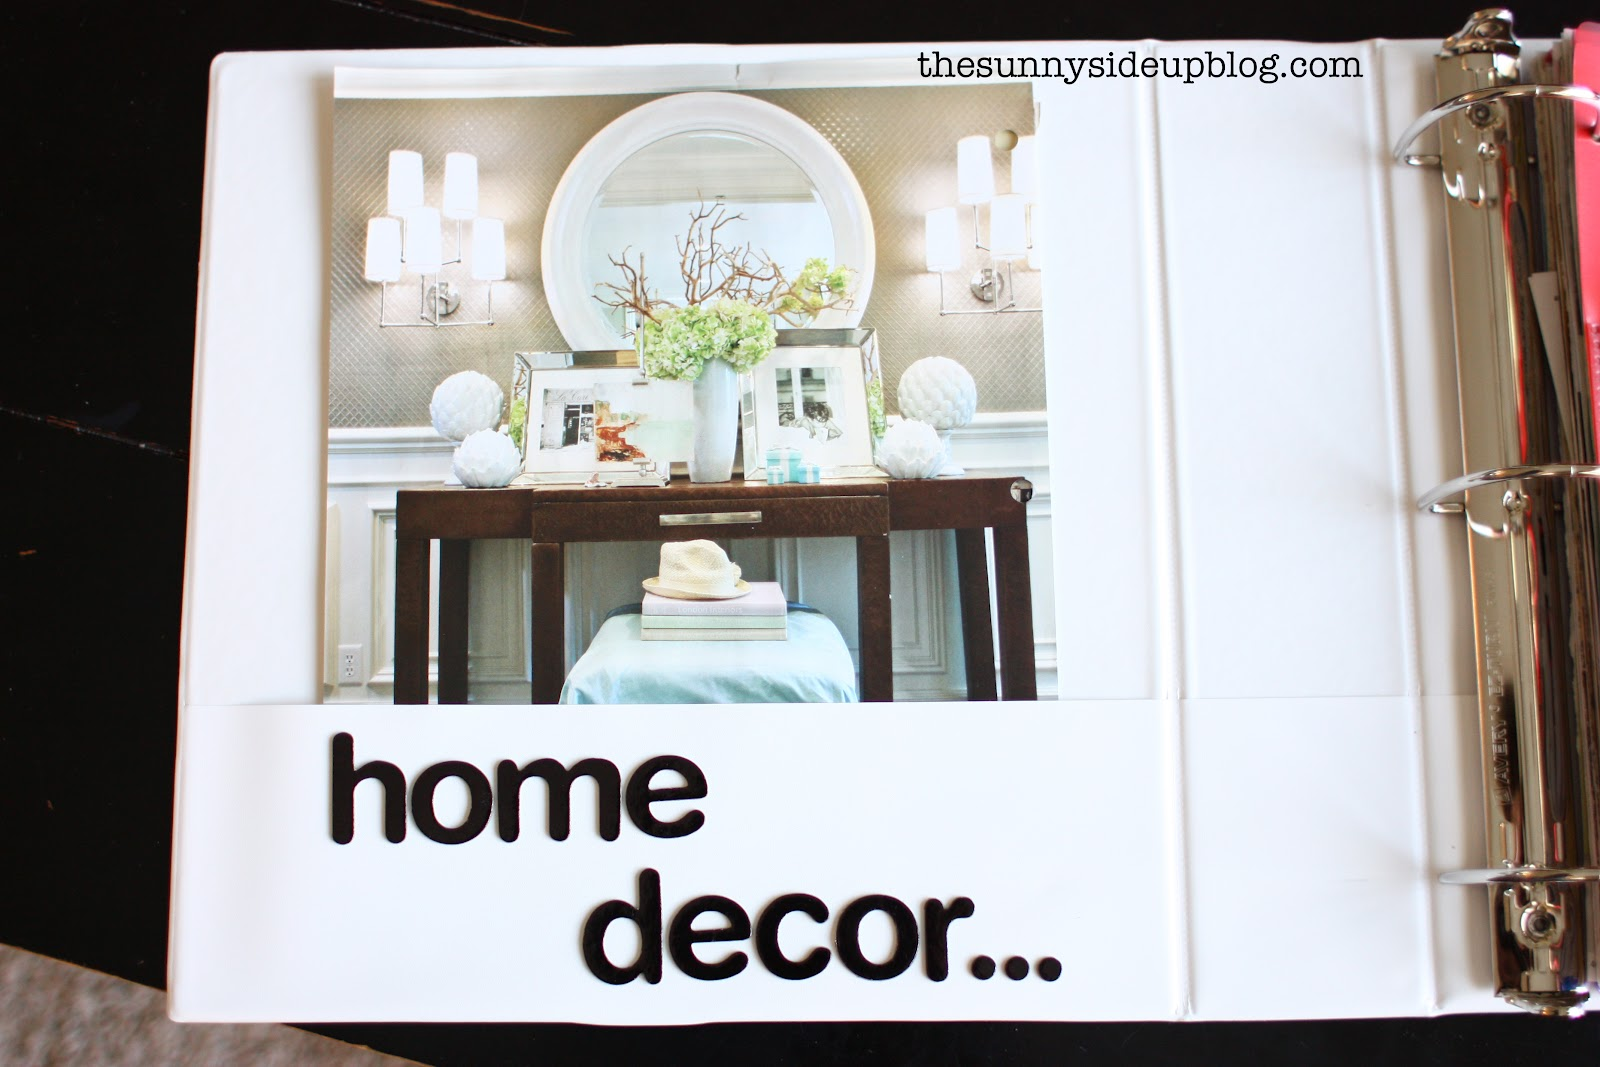 Home decor binder re do the sunny side up blog Pinterest everything home decor